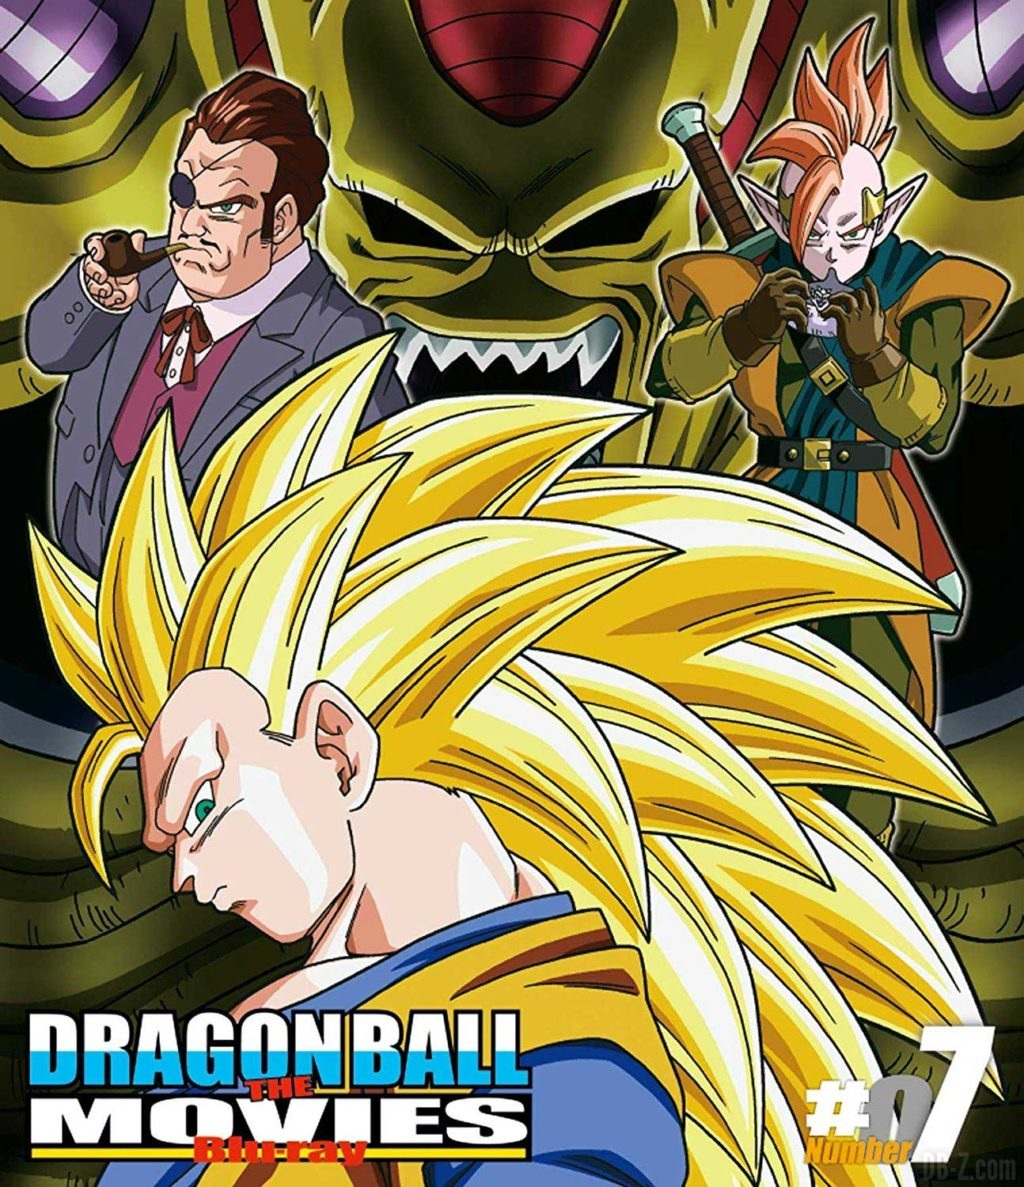 DRAGON BALL THE MOVIES Blu-ray Volume 7